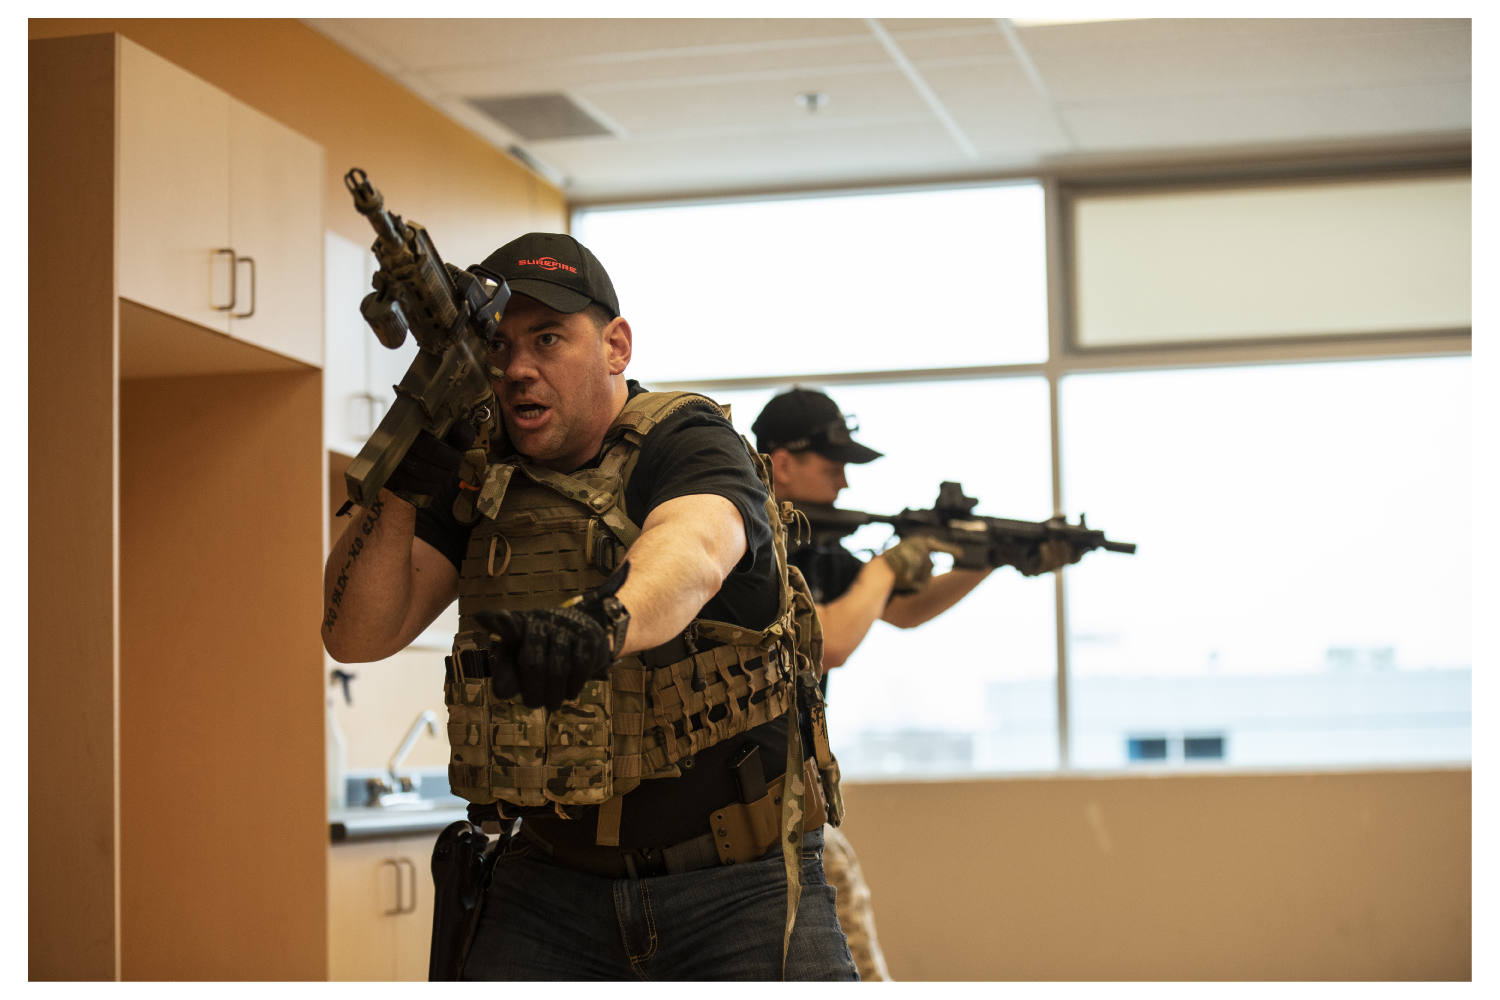 LEVEL1 - 130 $ CAD (MILITARY REBATE 15 %)1-day course (0800-1630)Build your basic skills to enter ,clear and secure built up urban structures. Learn communication as a 5, 2 or solo man team. Movement, positions and individual tasks are fundamentals that will be covered.